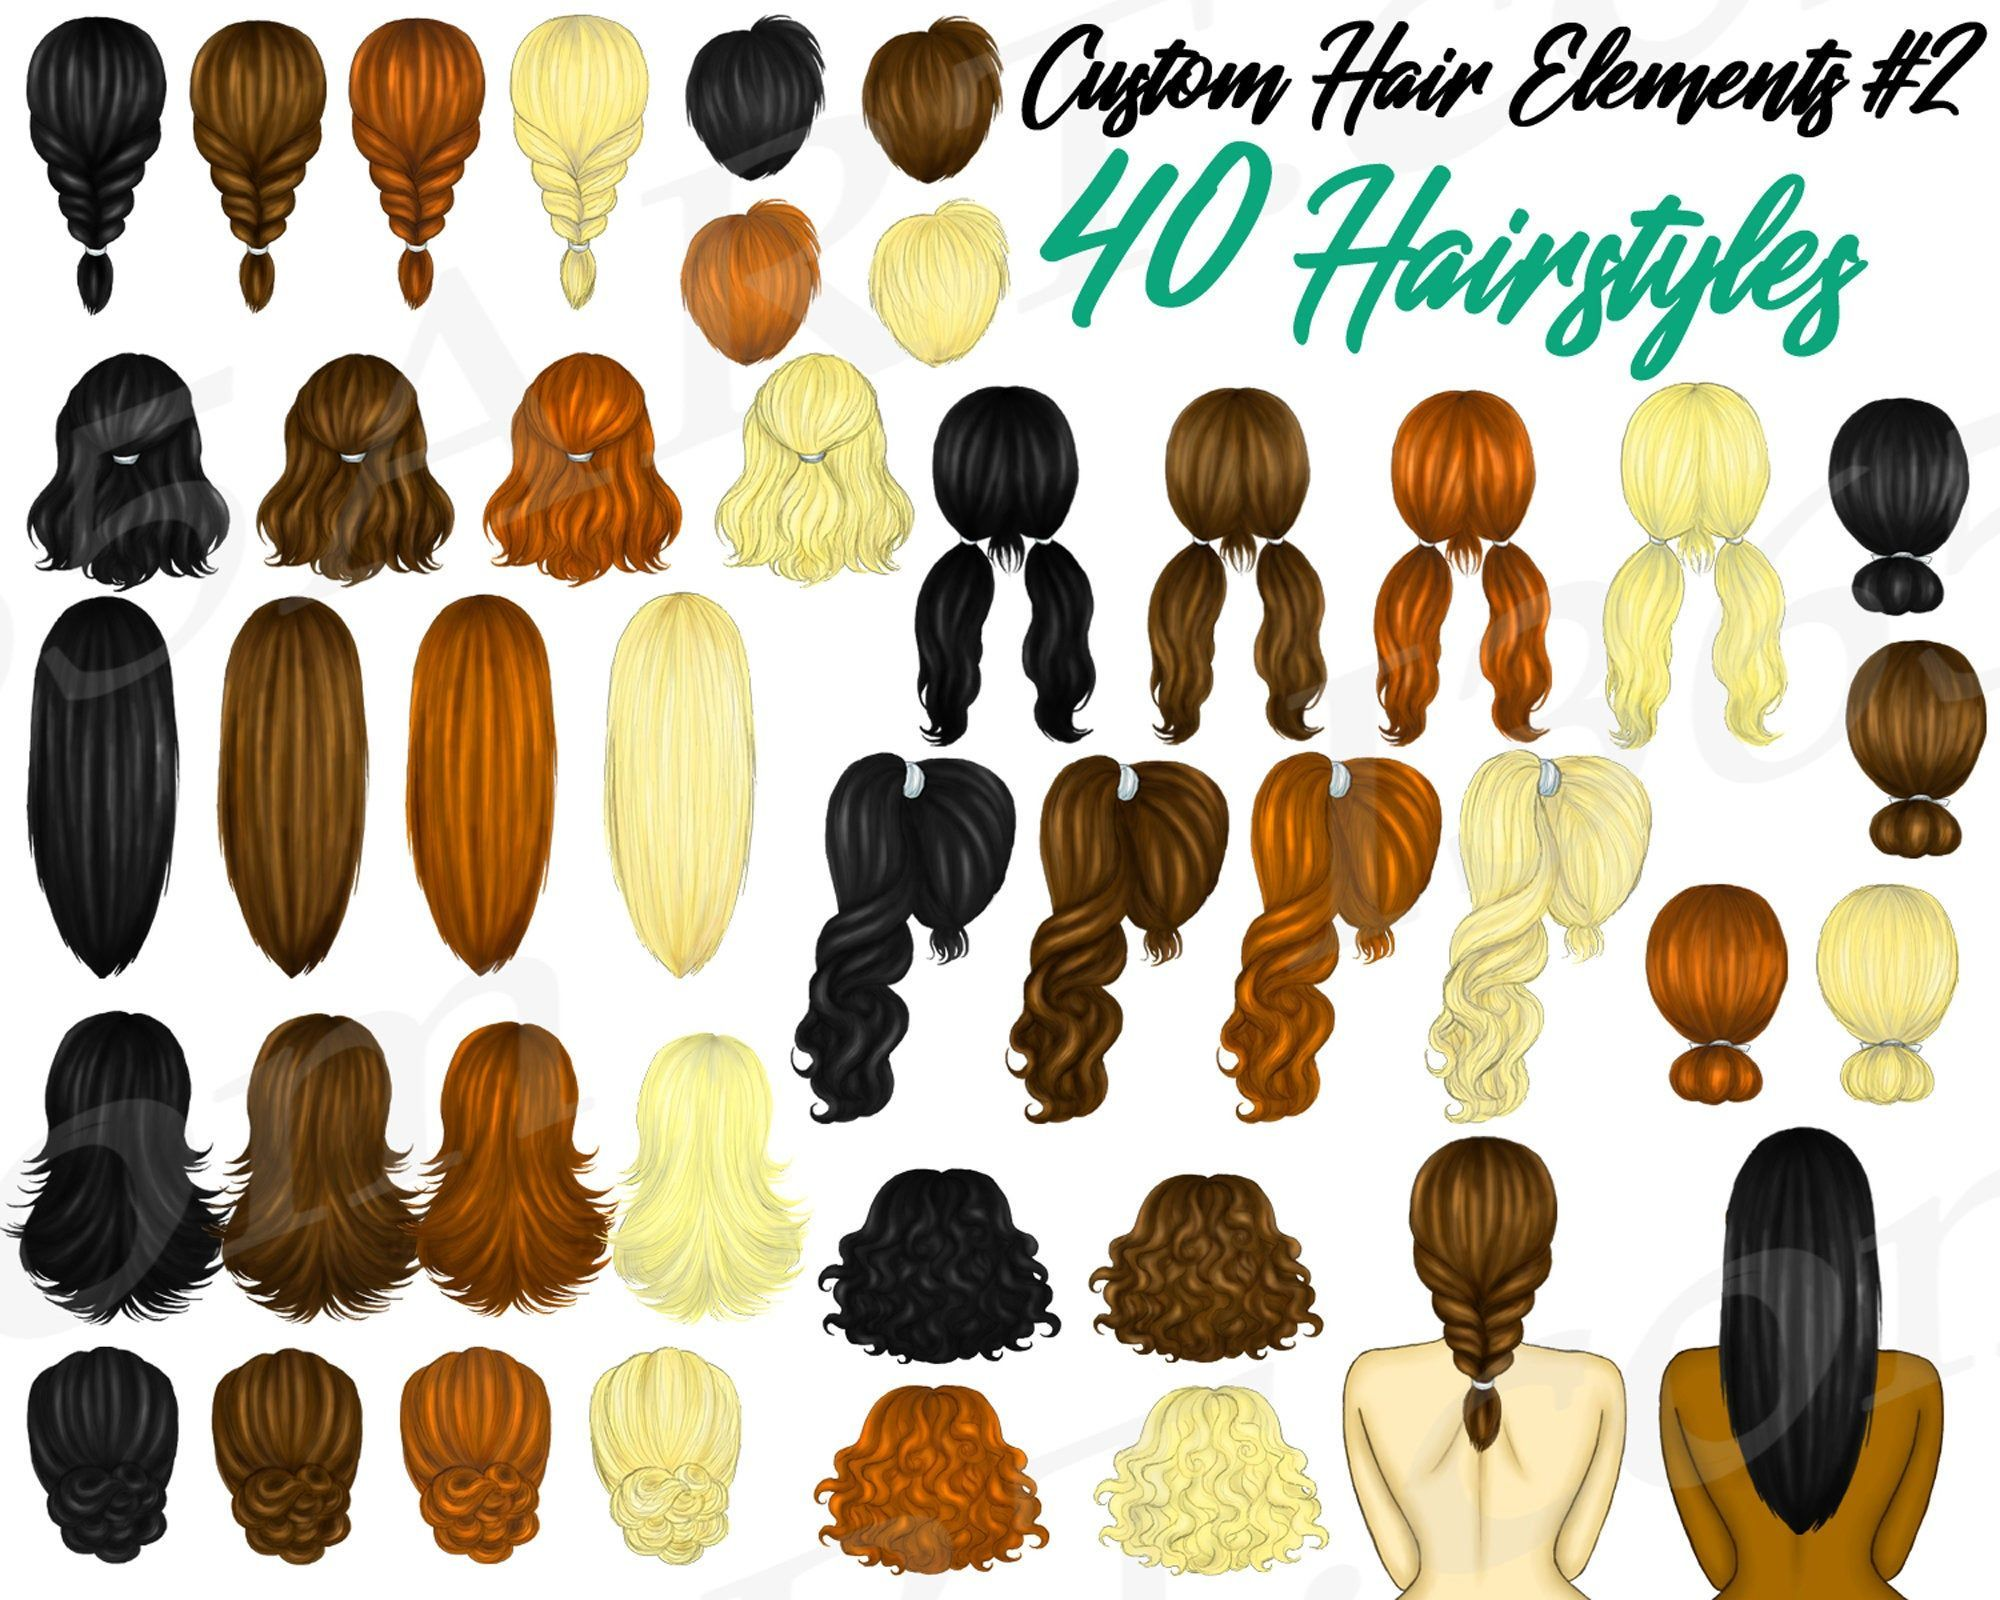 Benutzerdefinierte Frisuren Clipart Frisuren Grund Frisuren Frauen Haare Lange Frisuren Kurze In 2020 Basic Hairstyles Hair Clipart Hair Styles